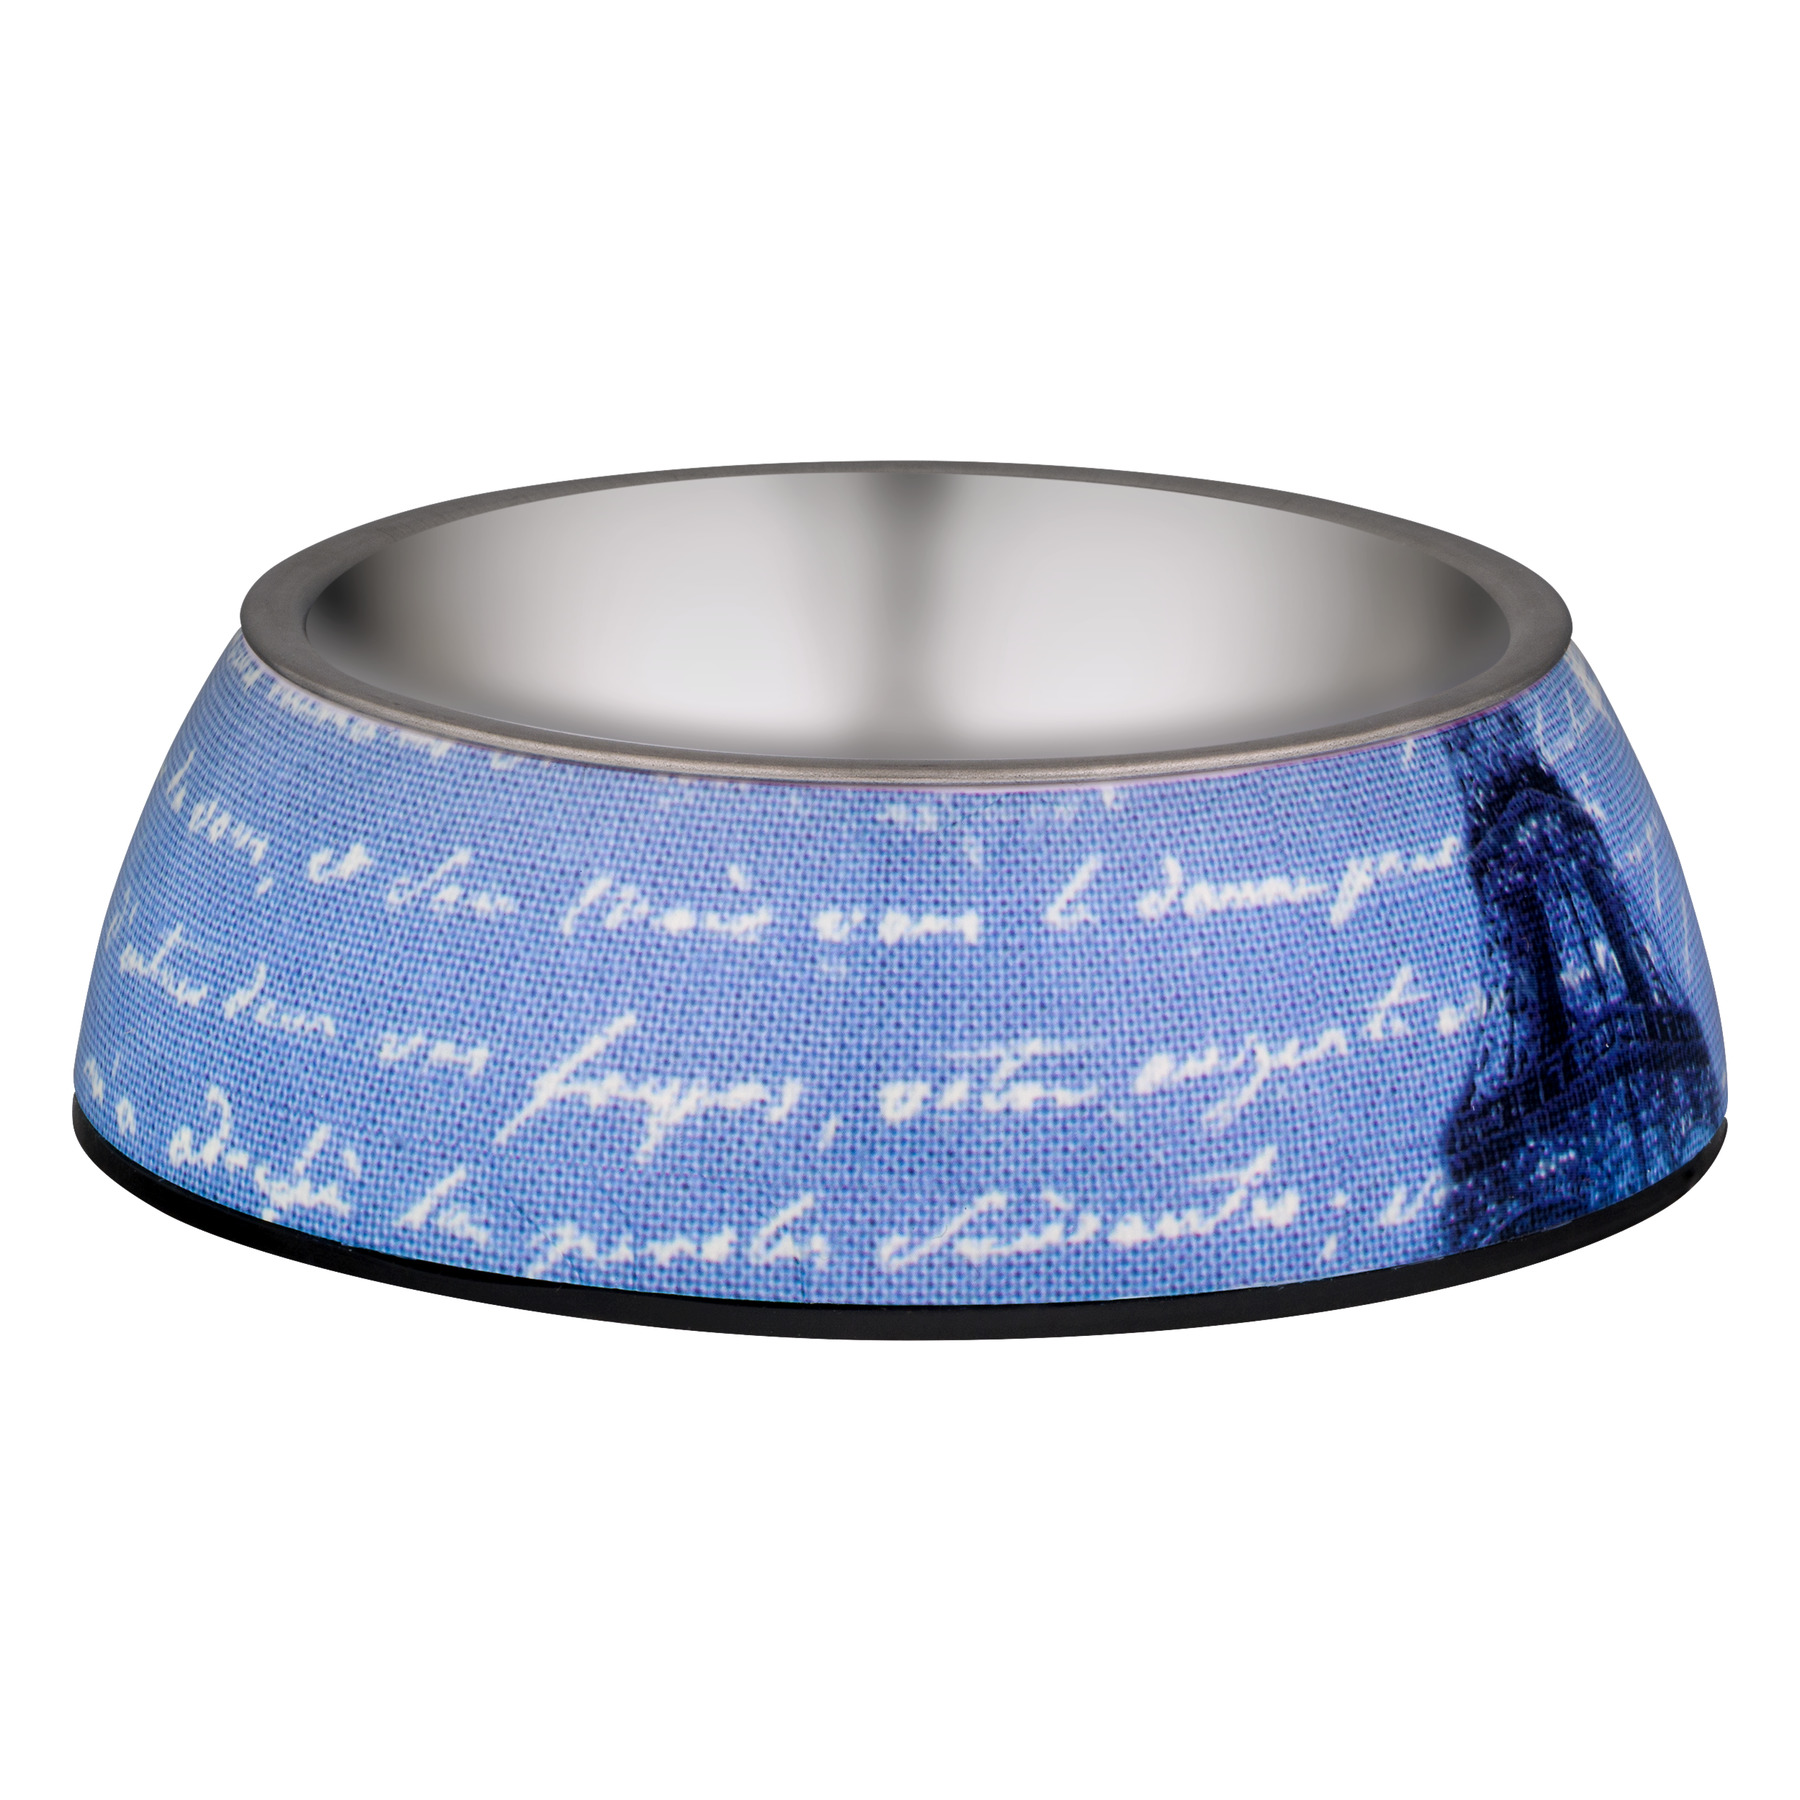 Loving Pets Milano Collection Bowl, World Traveler Blue Linen, 1.0 CT